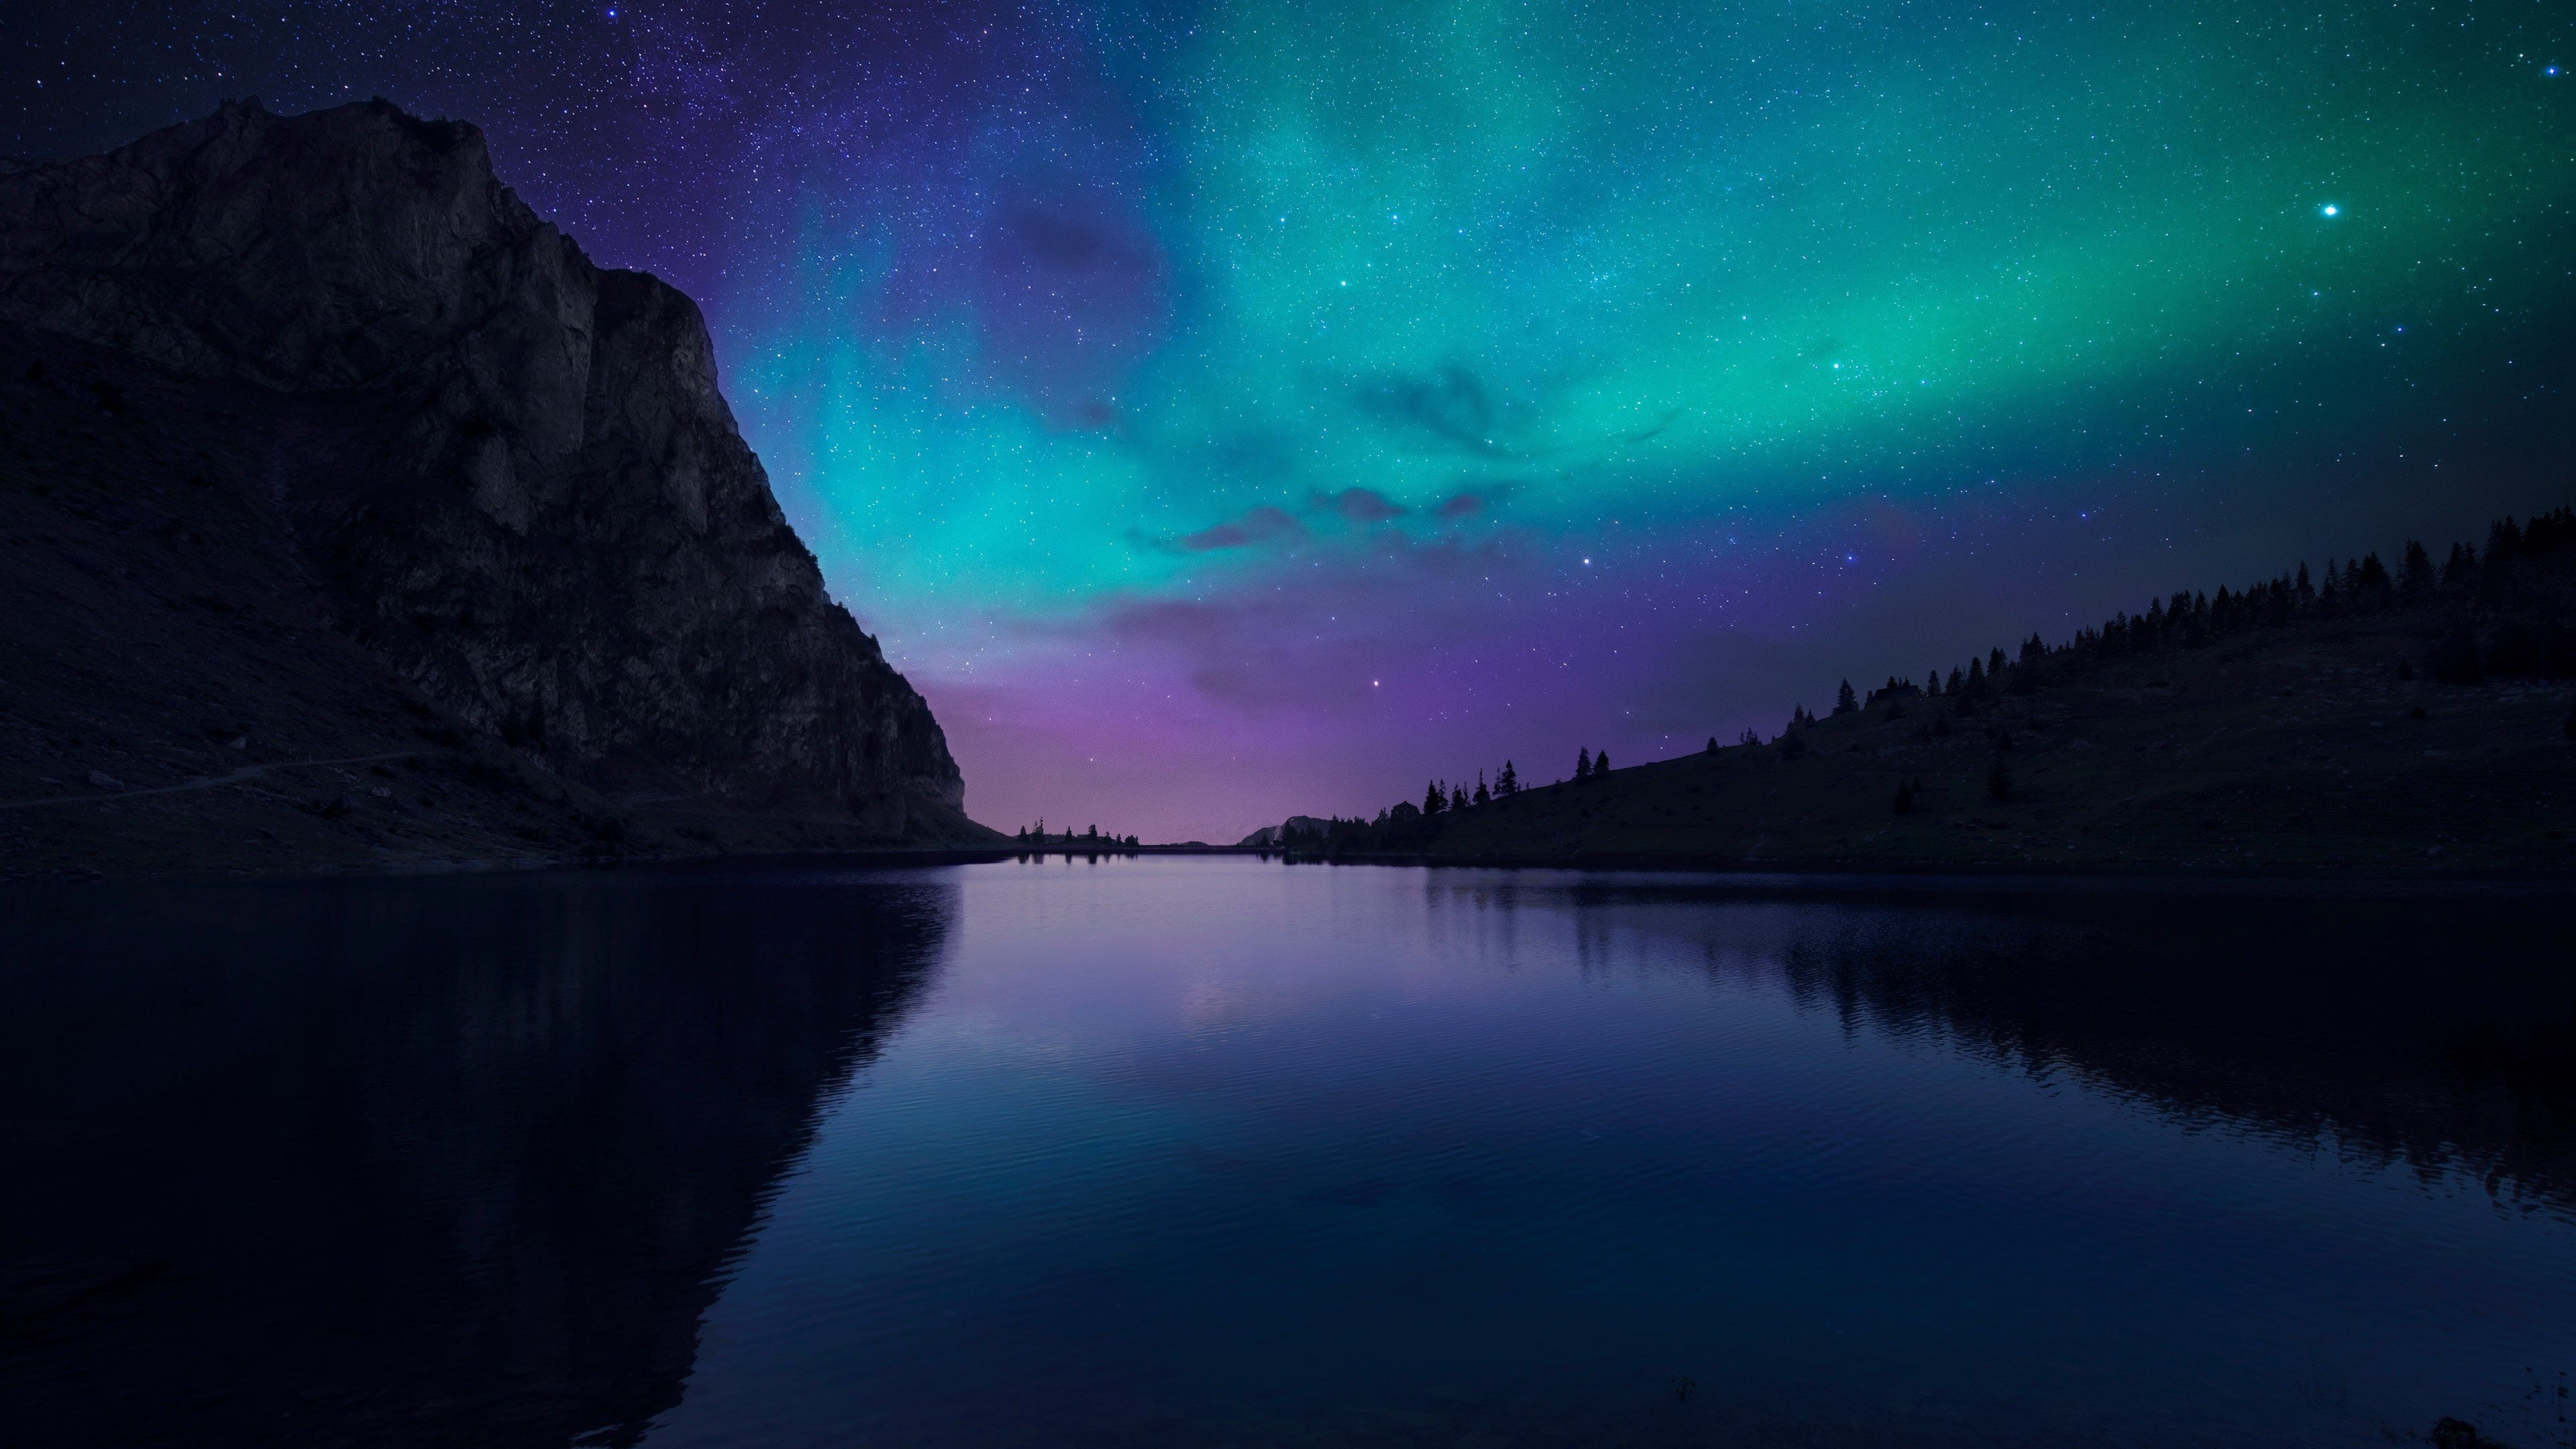 3840x2160 Aurora 4k Top Computer Wallpaper Northern Lights Wallpaper Landscape Wallpaper Night Sky Wallpaper